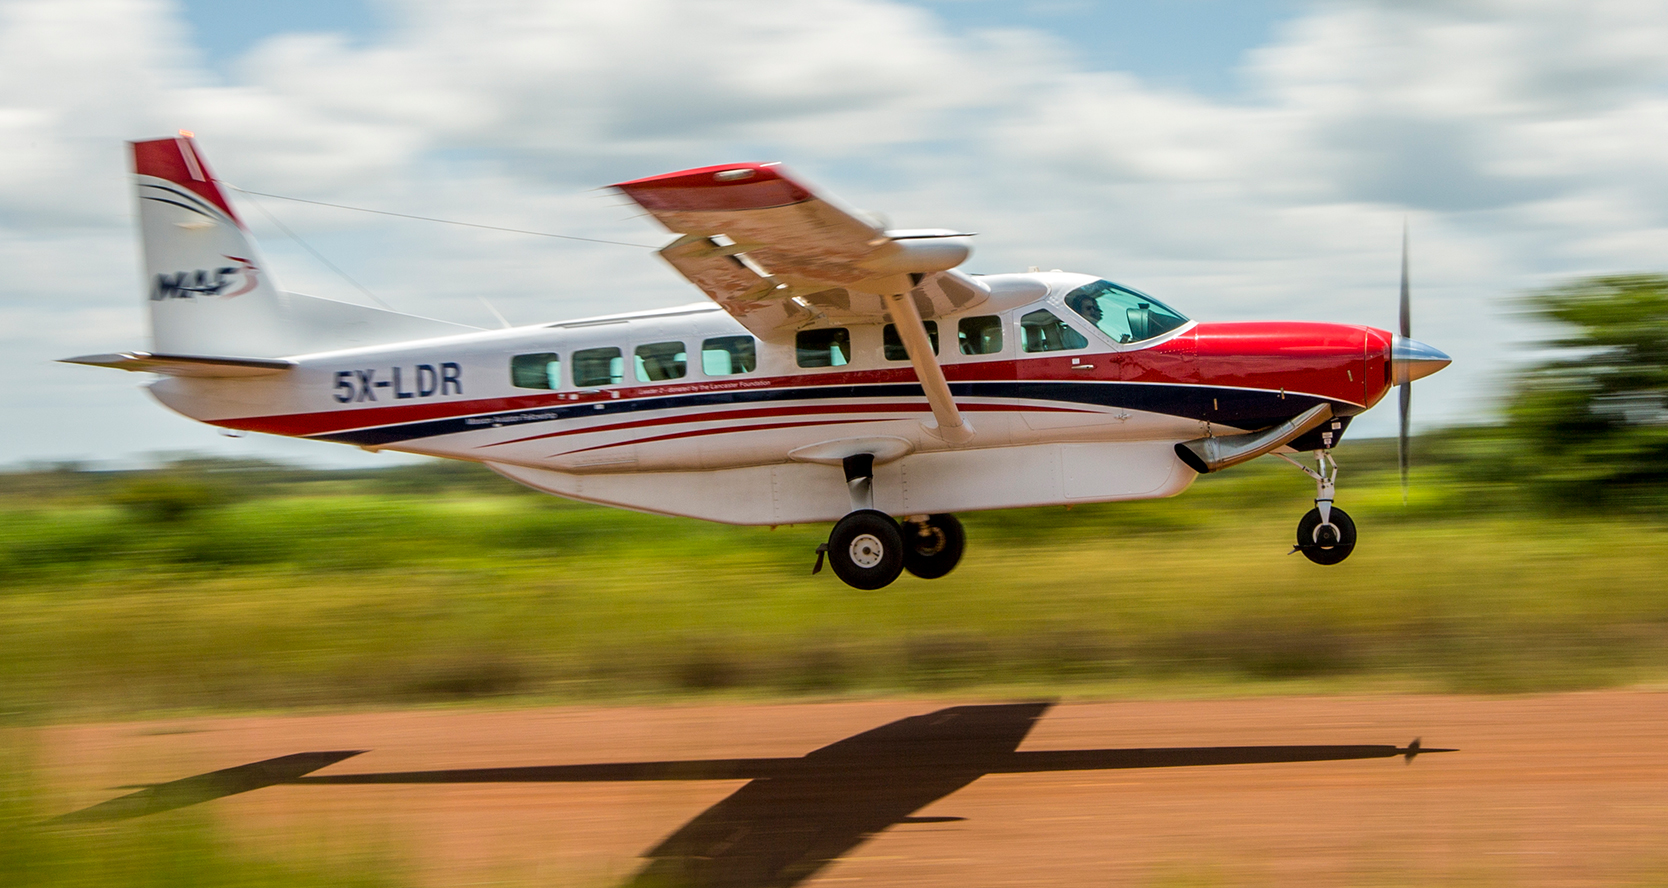 Fly-in safari Uganda